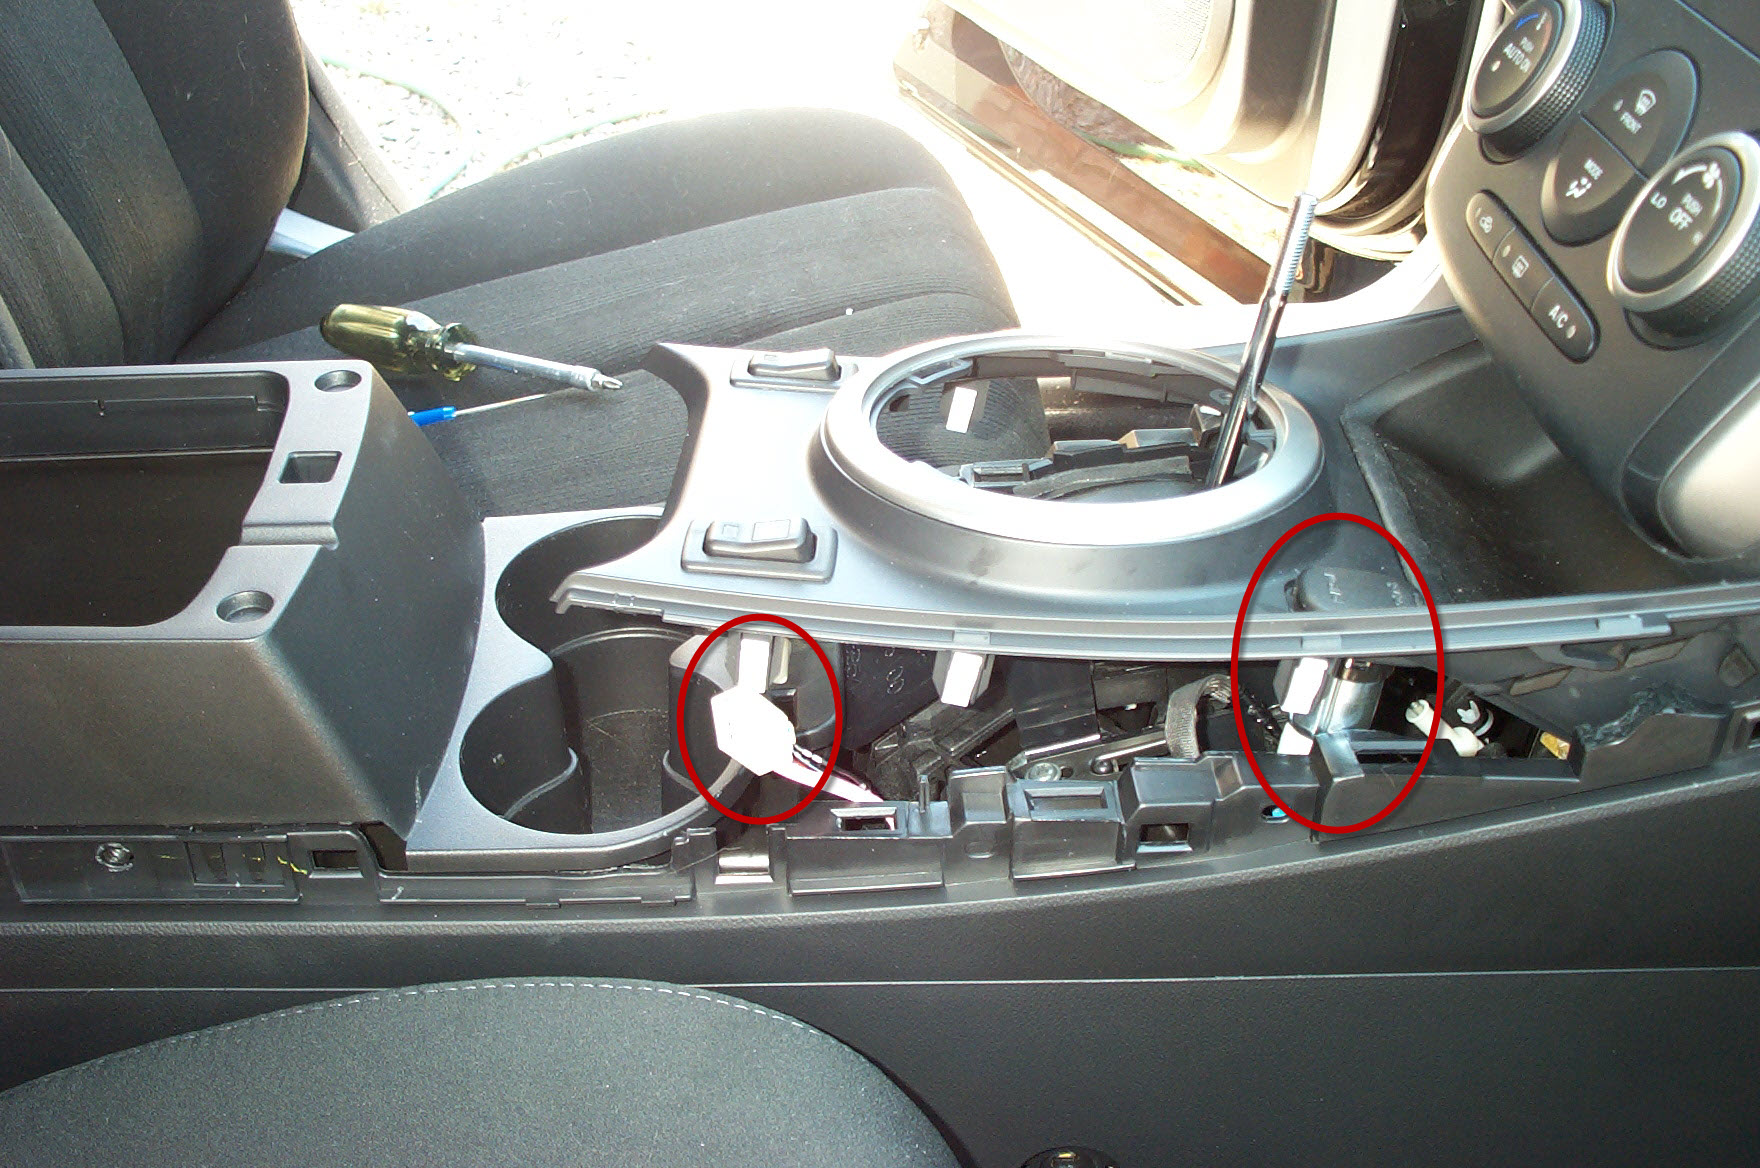 Mazda Cx 7 Cigarette Lighter Not Working Wiring Diagrams